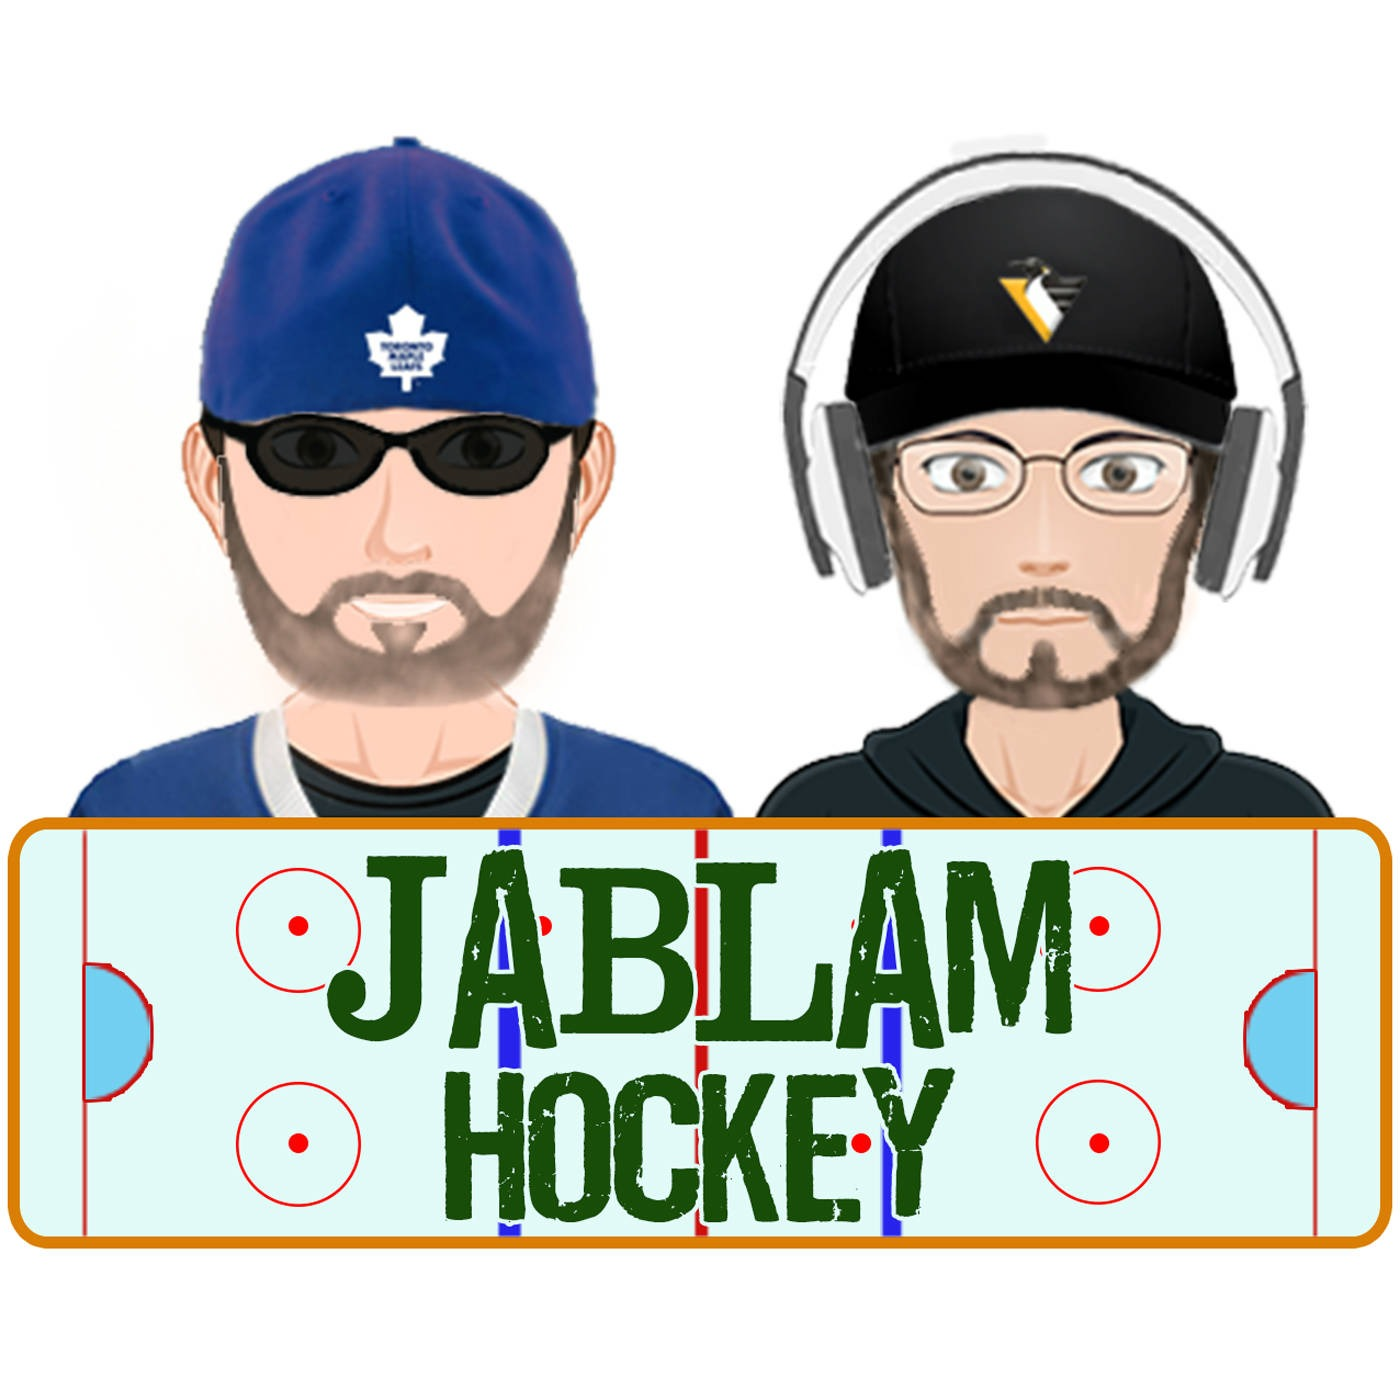 Jablam Hockey